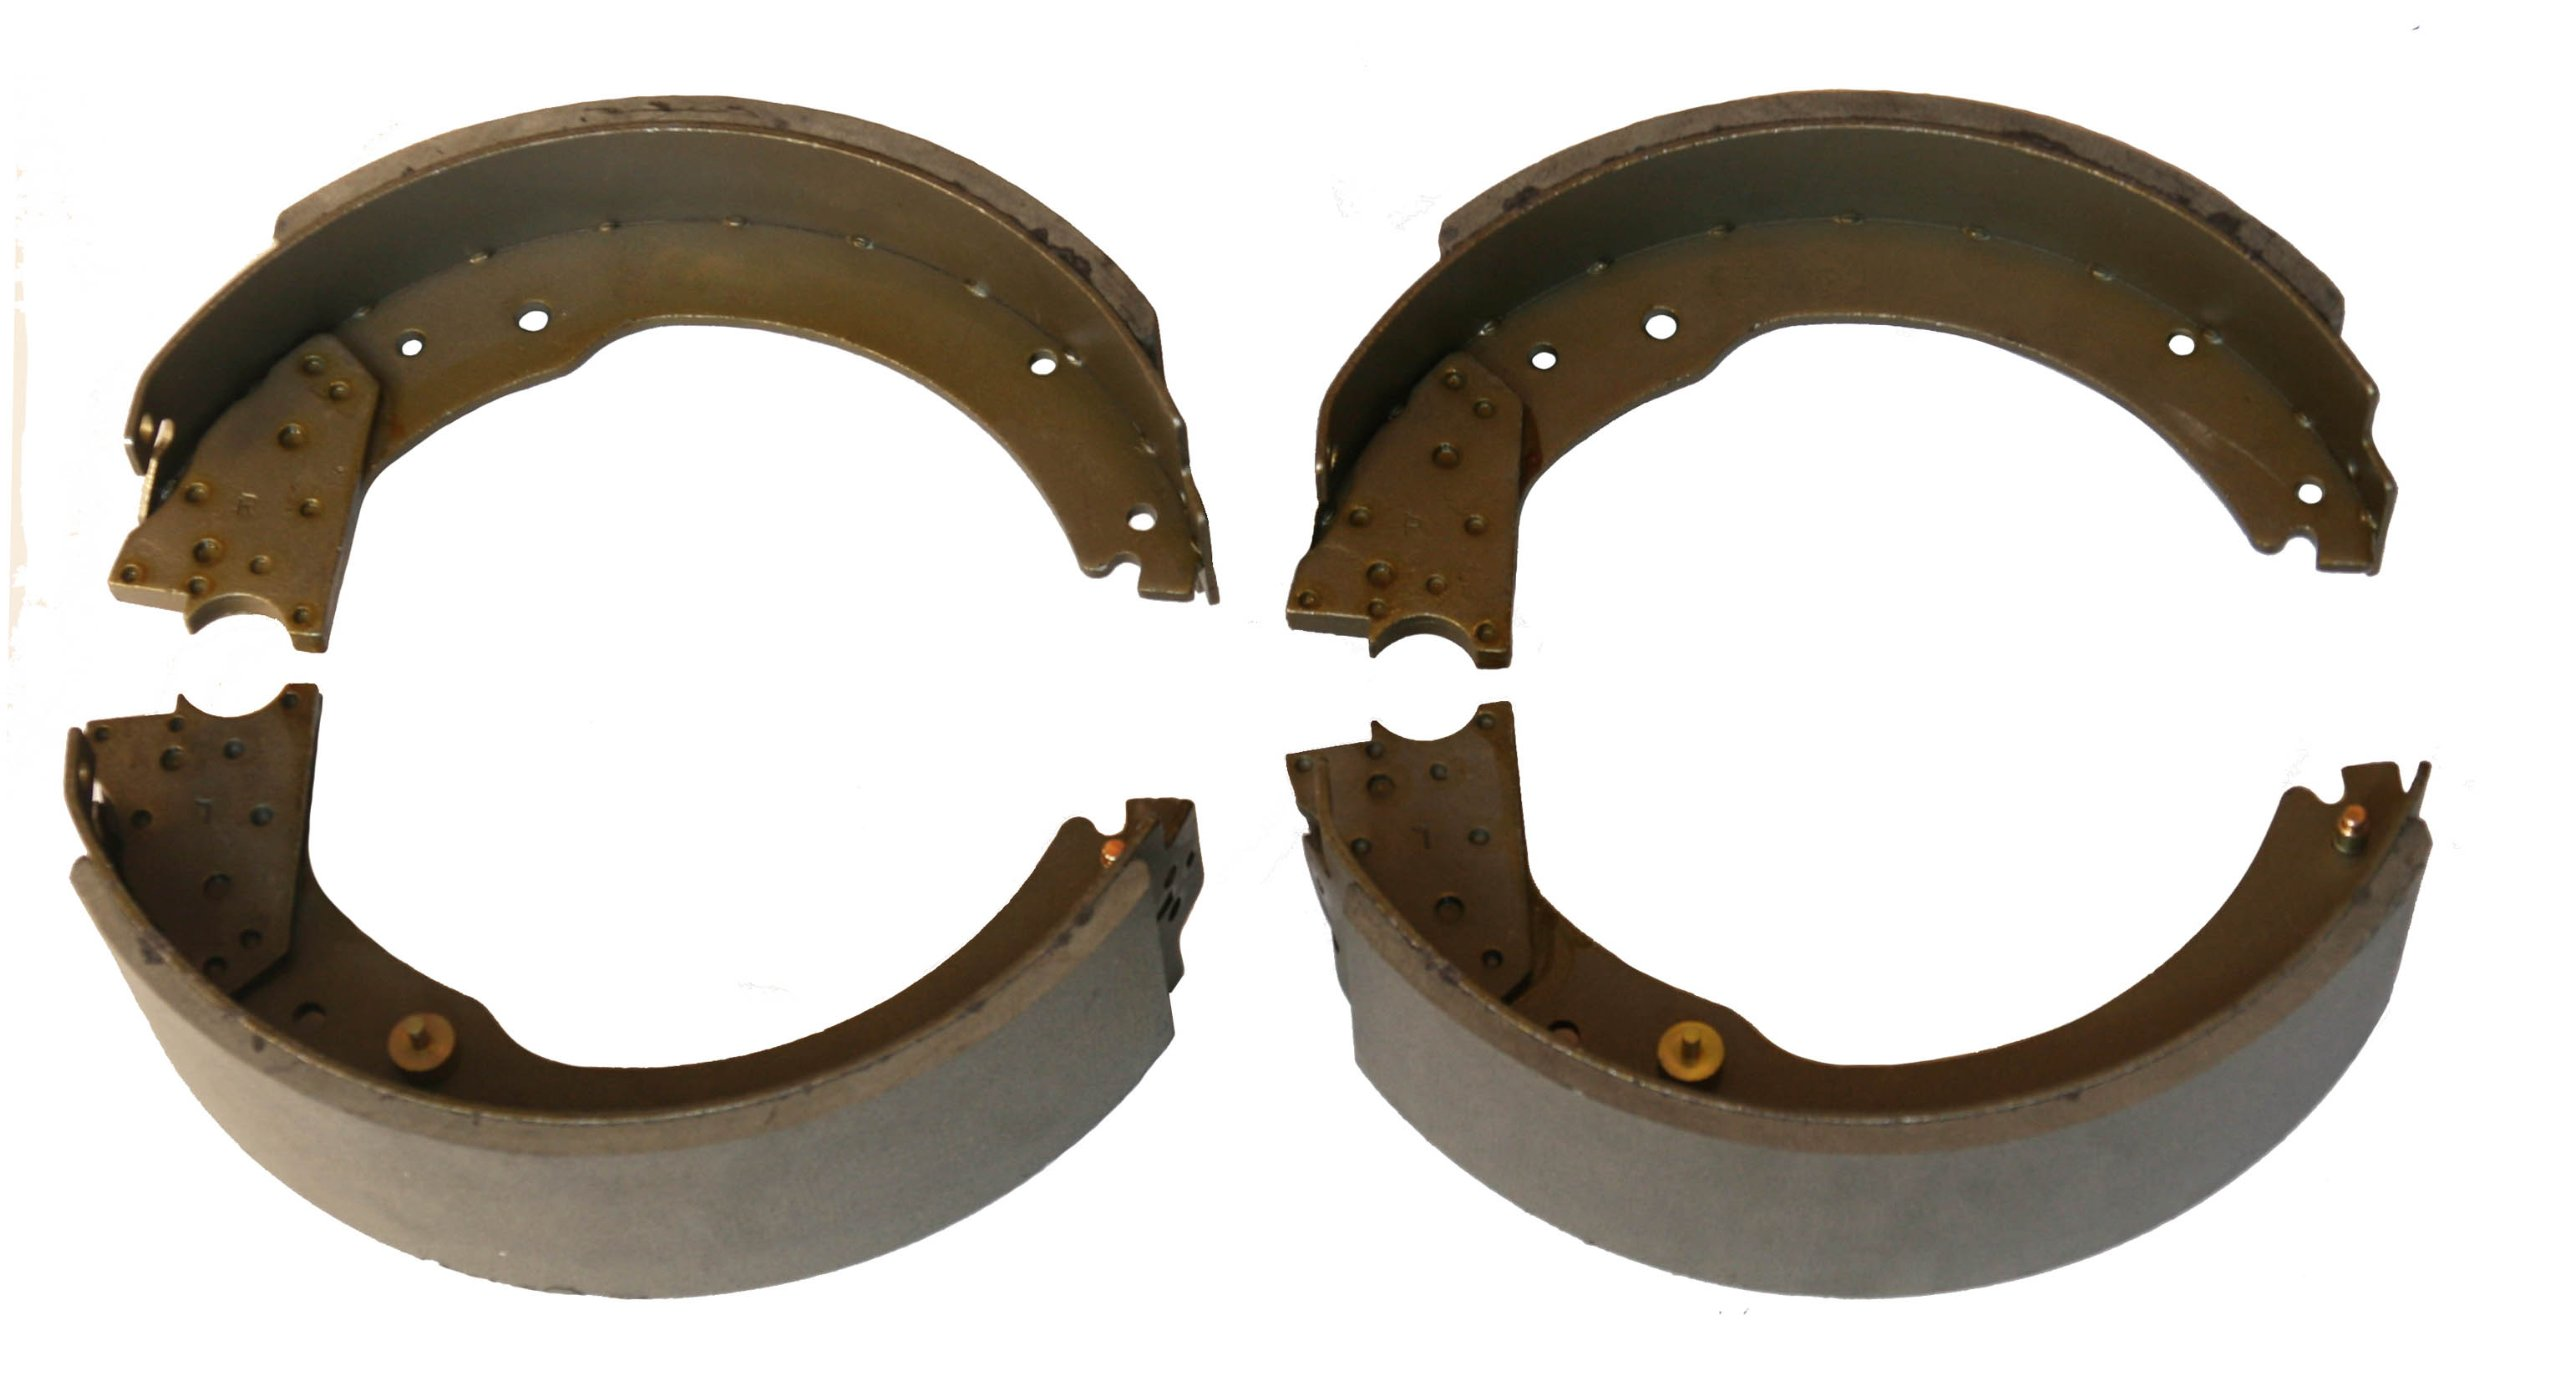 12-1/4'' x 3-3/8'' trailer brake shoes replacement kits (2 pairs) - 21030